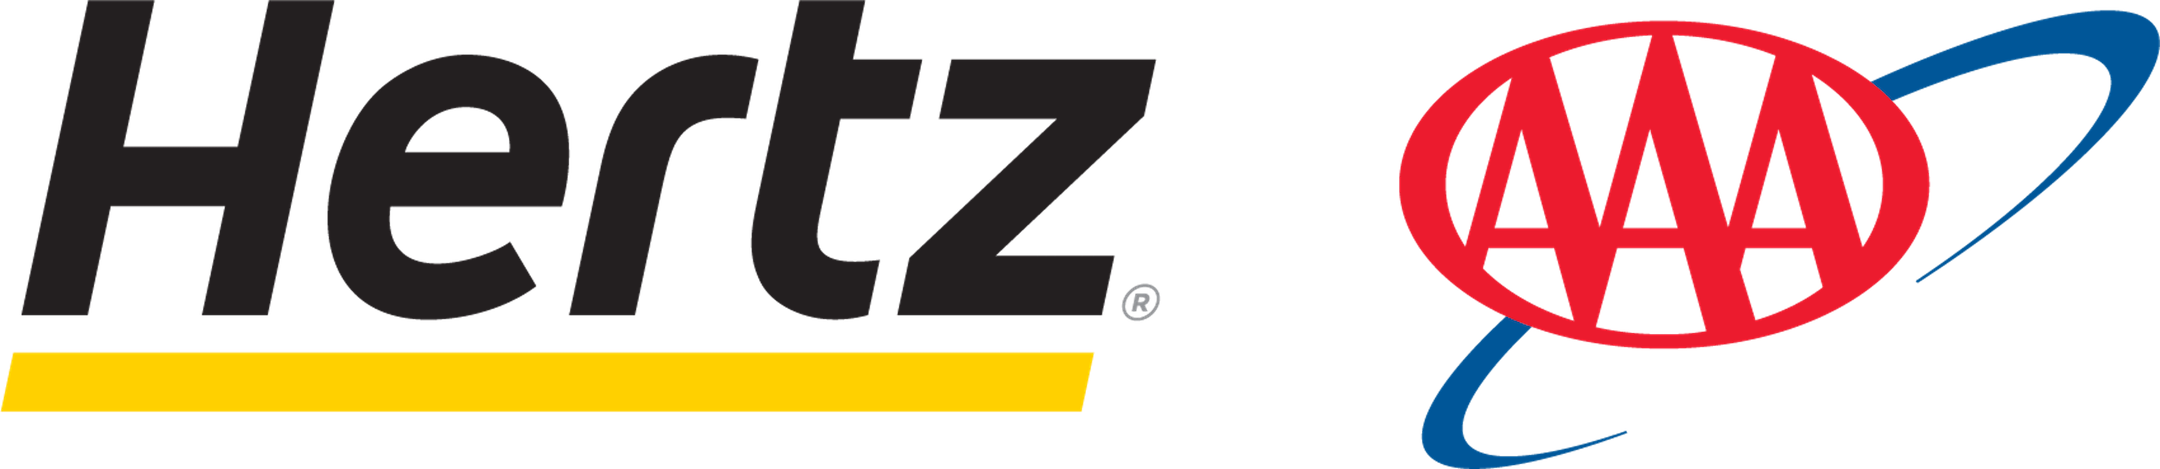 Book a Rental Car: Get Hertz Car Rental Deals.